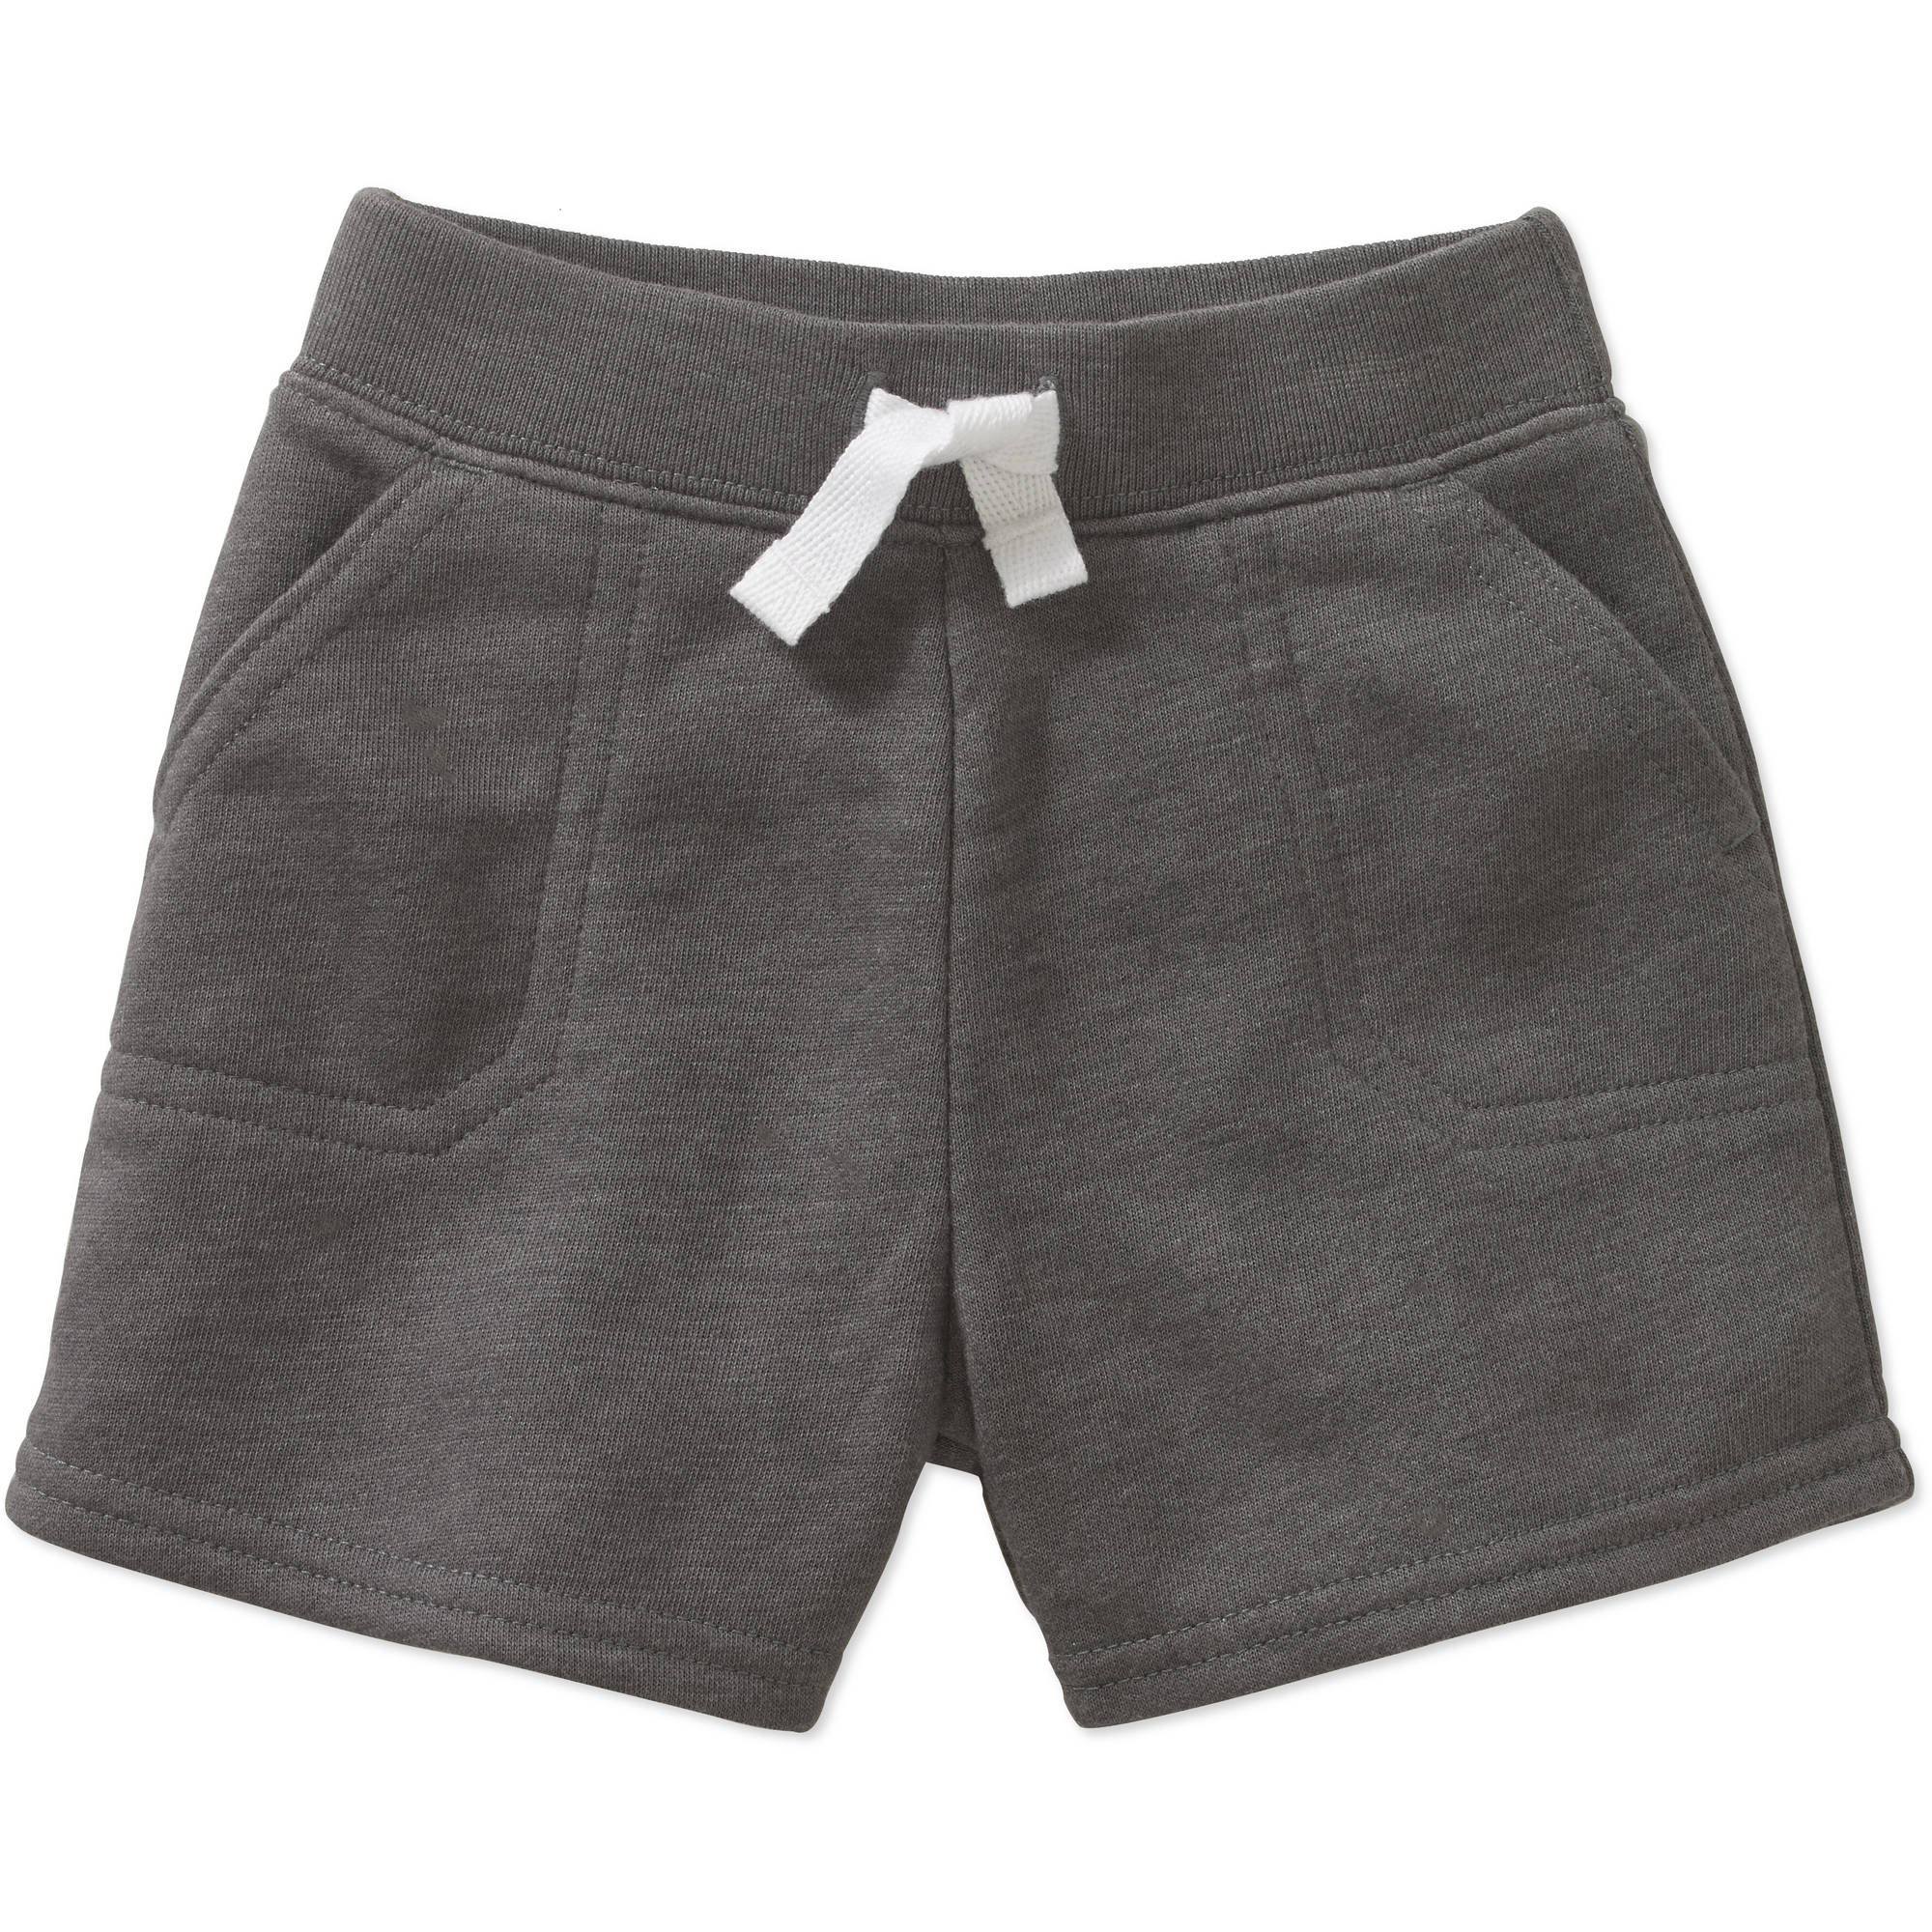 Garanimals Newborn Baby Boy French Terry Shorts